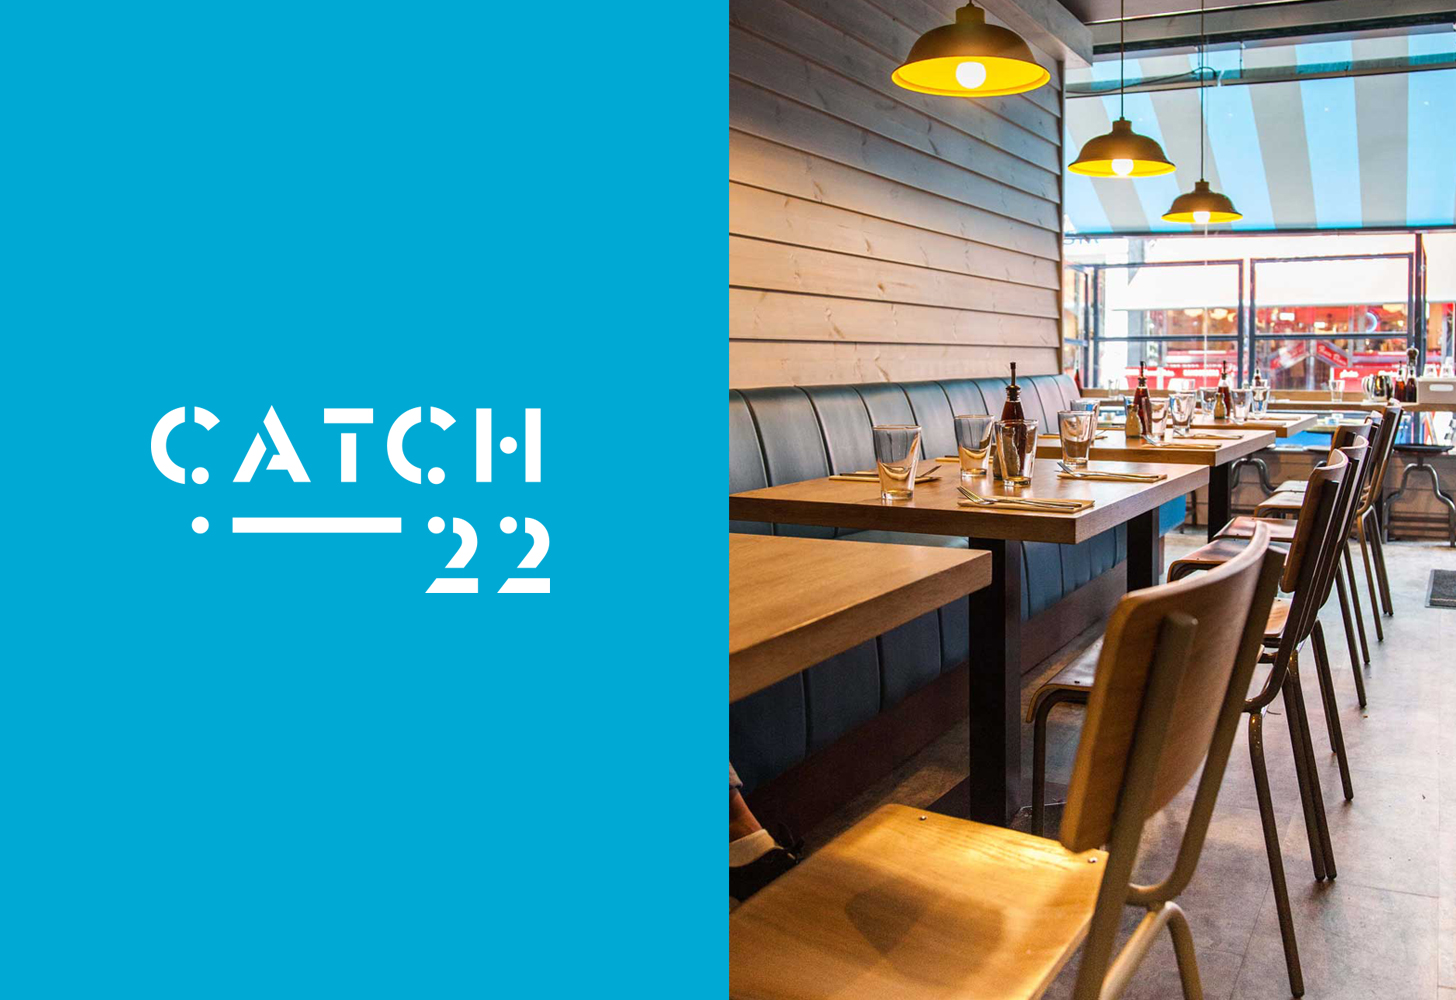 Cover image: Catch-22 Restaurant (2015)